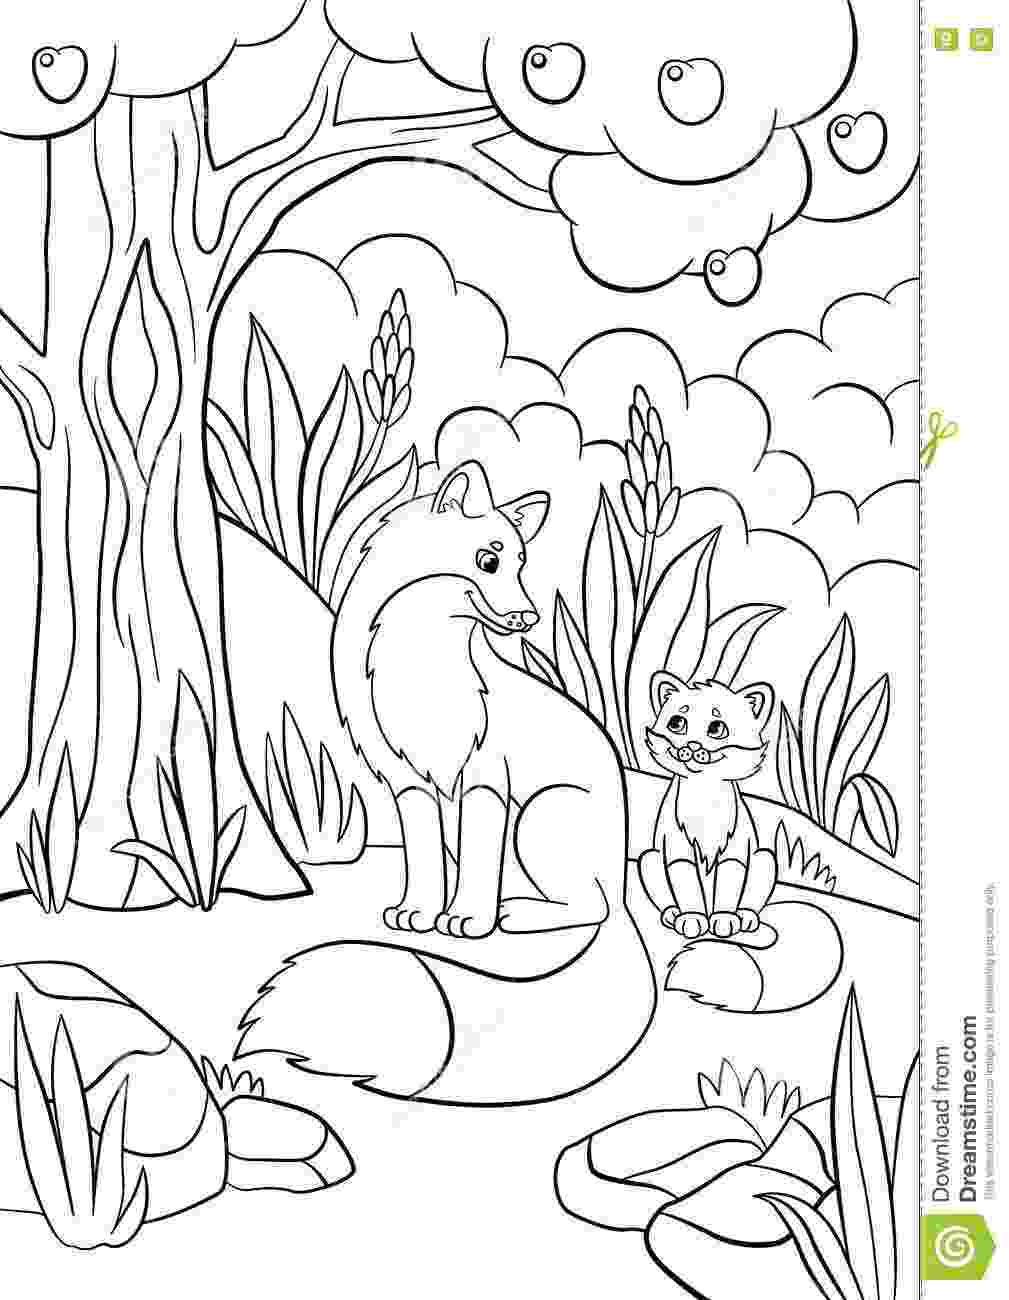 cute wild animals colouring pages coloring pages wild animals little cute baby bear stock pages colouring animals cute wild